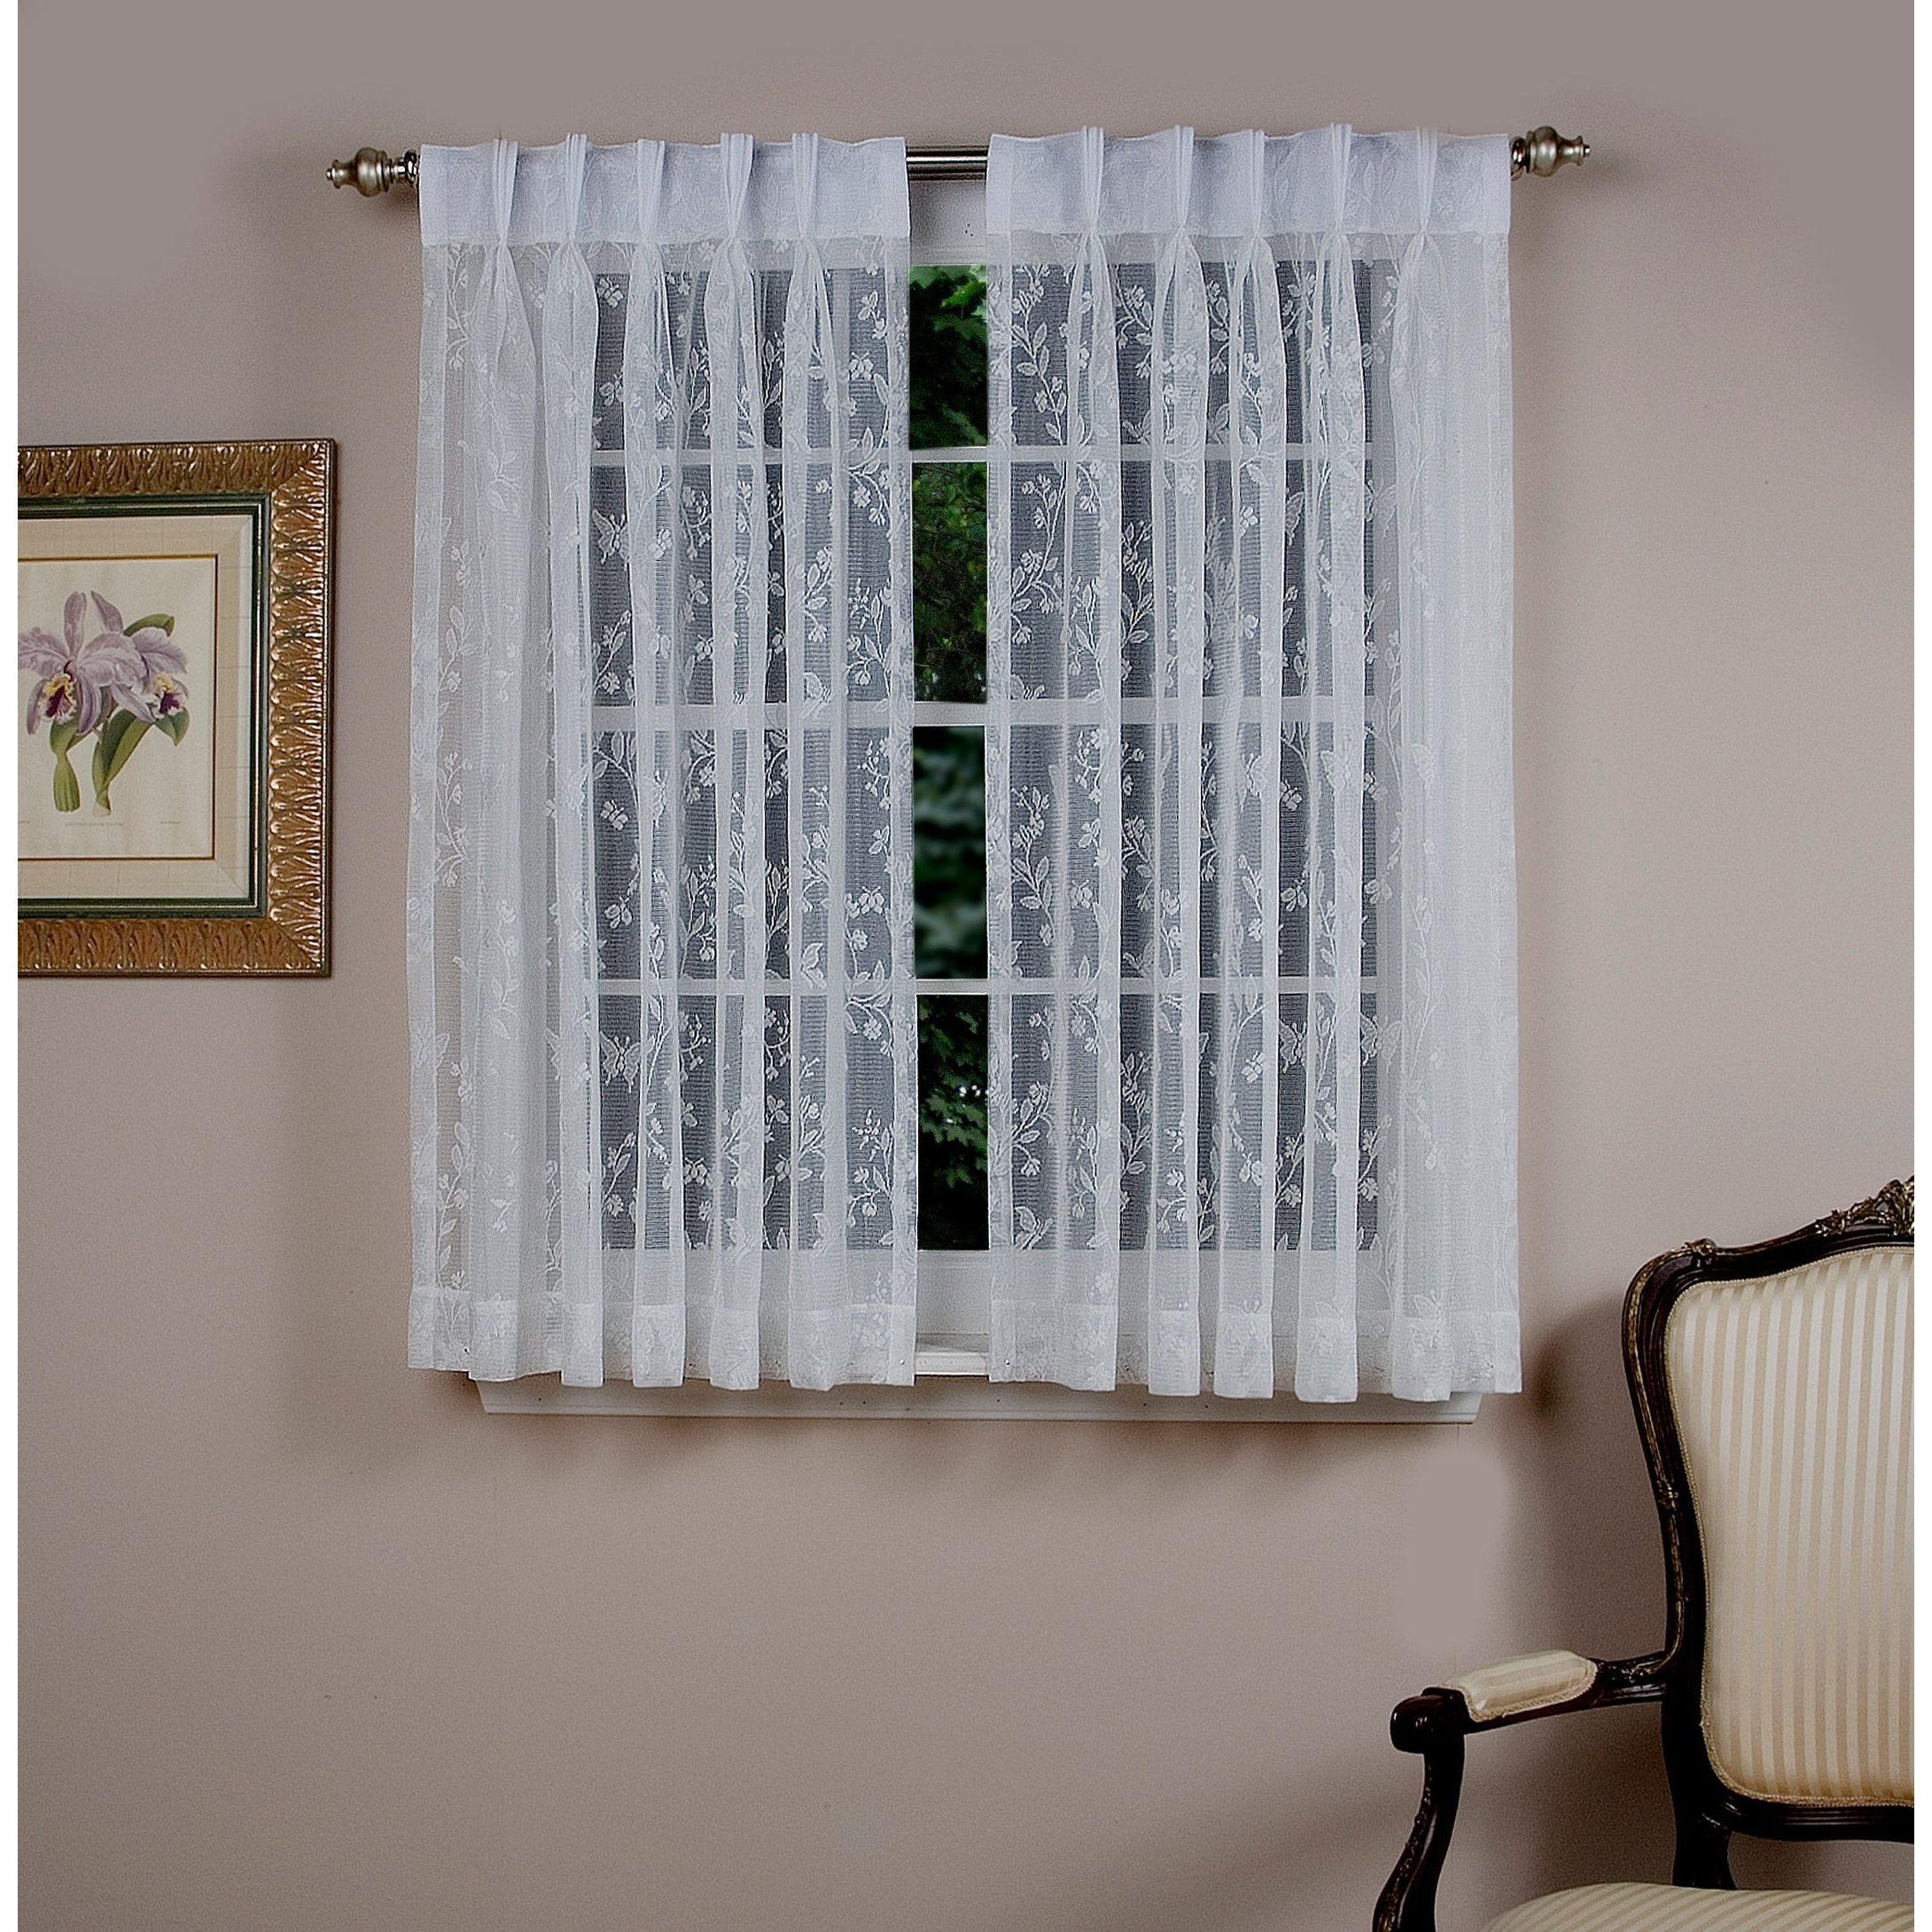 Buy 54 Inches Sheer Curtains Online At Overstock (View 14 of 20)